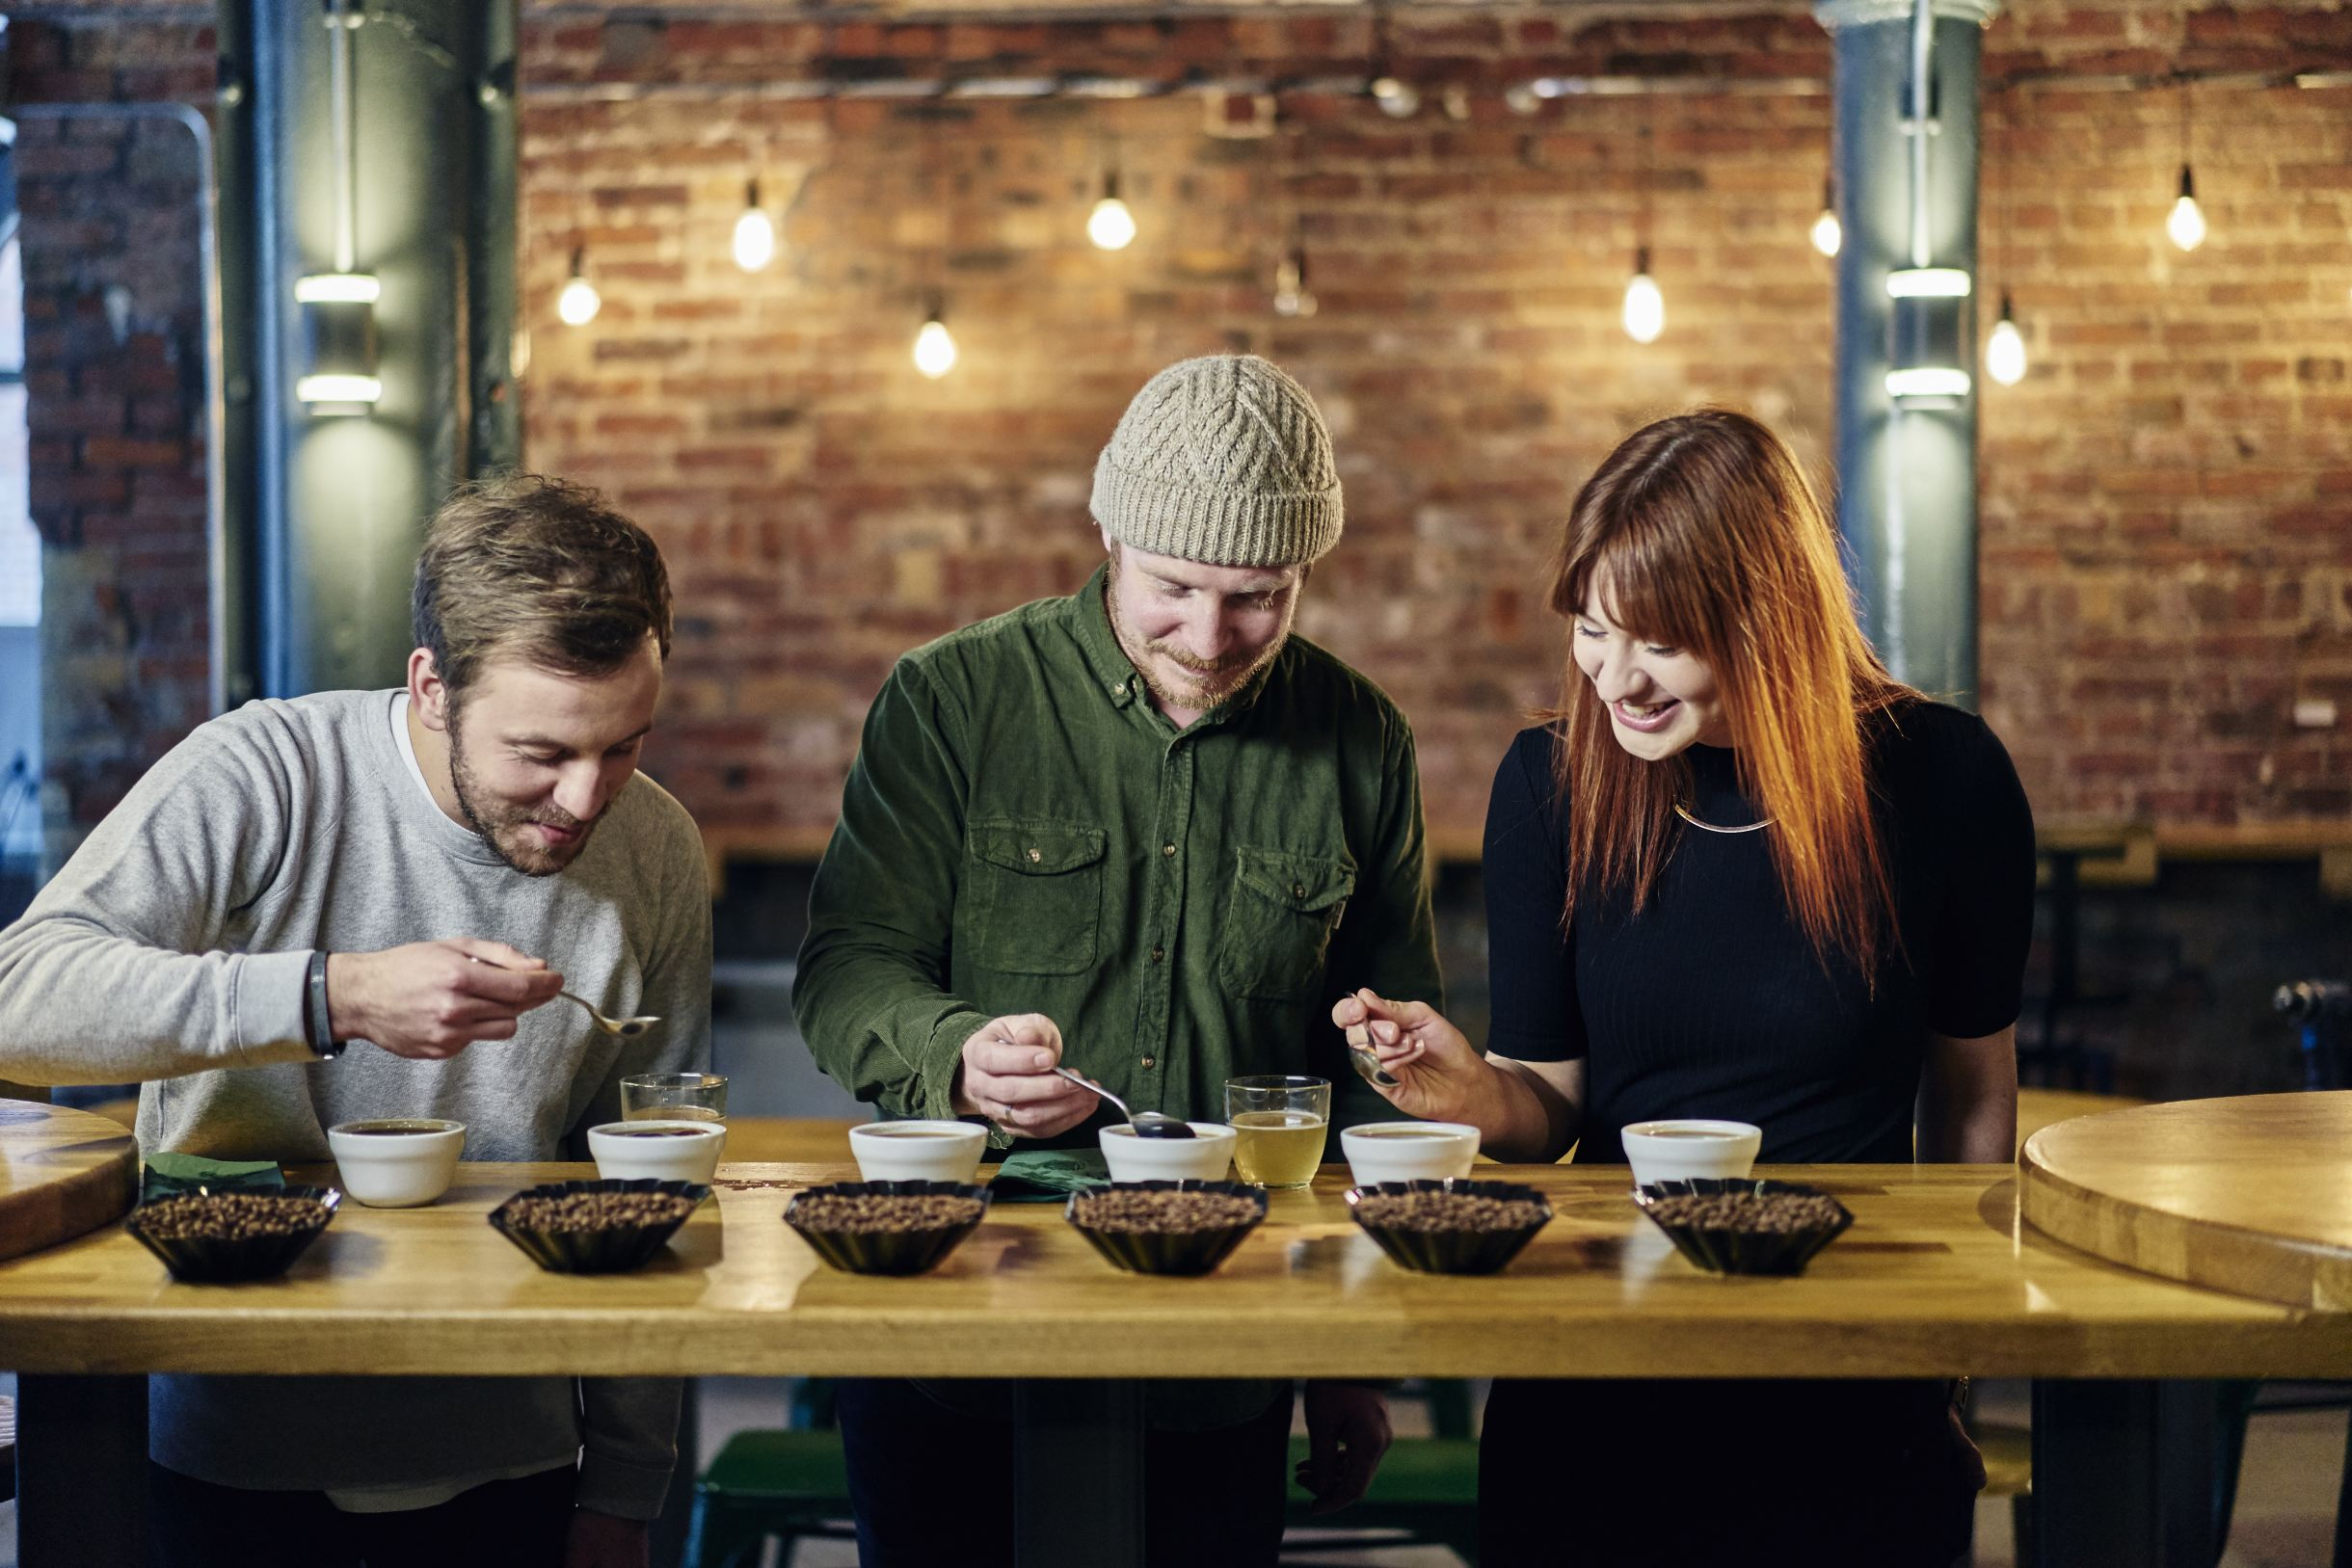 Wed 16th January 2019 - Housed in the courtyard of a former cotton warehouse, Ancoats Coffee's beautiful exposed brick walls and exquisite glass ceiling makes it the perfect spot for a brew and for watching the world go by.We're excited to see that this Wednesday they'll be holding a Colombian-inspired street food supper club, bringing heat and warmth to the heart of Ancoats.From servings of delicious and creamy corn soup from Bogota, to charred avocado, chimichurri and Bunuelos Colombianos - light and crispy dough balls with cinnamon dusting and chilli-infused salted caramel chocolate sauce, we think this supper club is just what the doctor ordered.Tickets available from Eventbrite